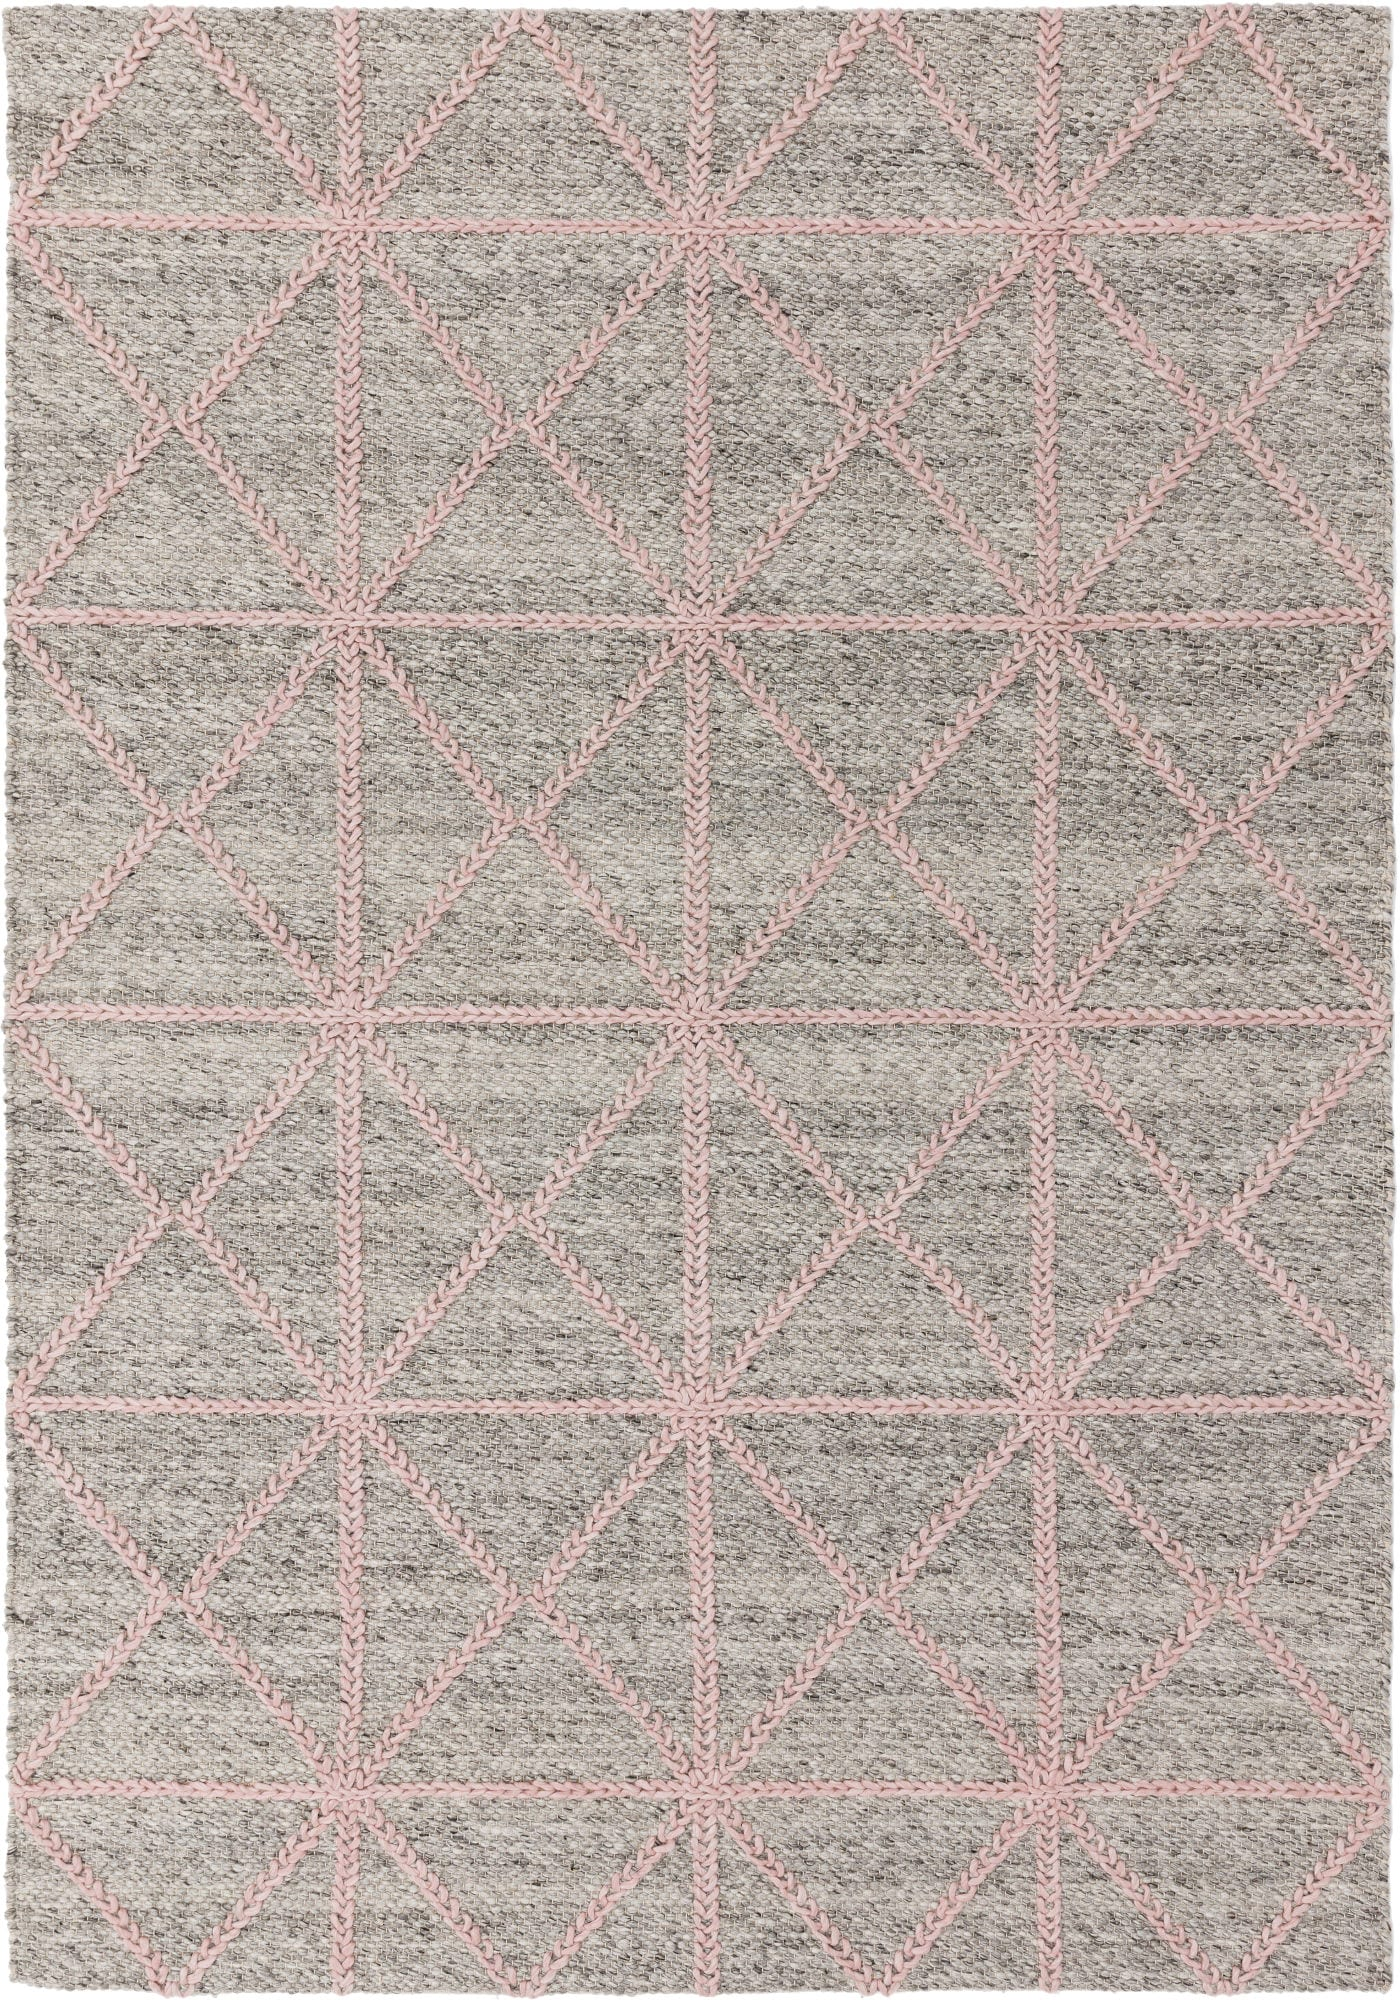 Prism Rug By Asiatic Carpets Colour Pink Rugs Uk